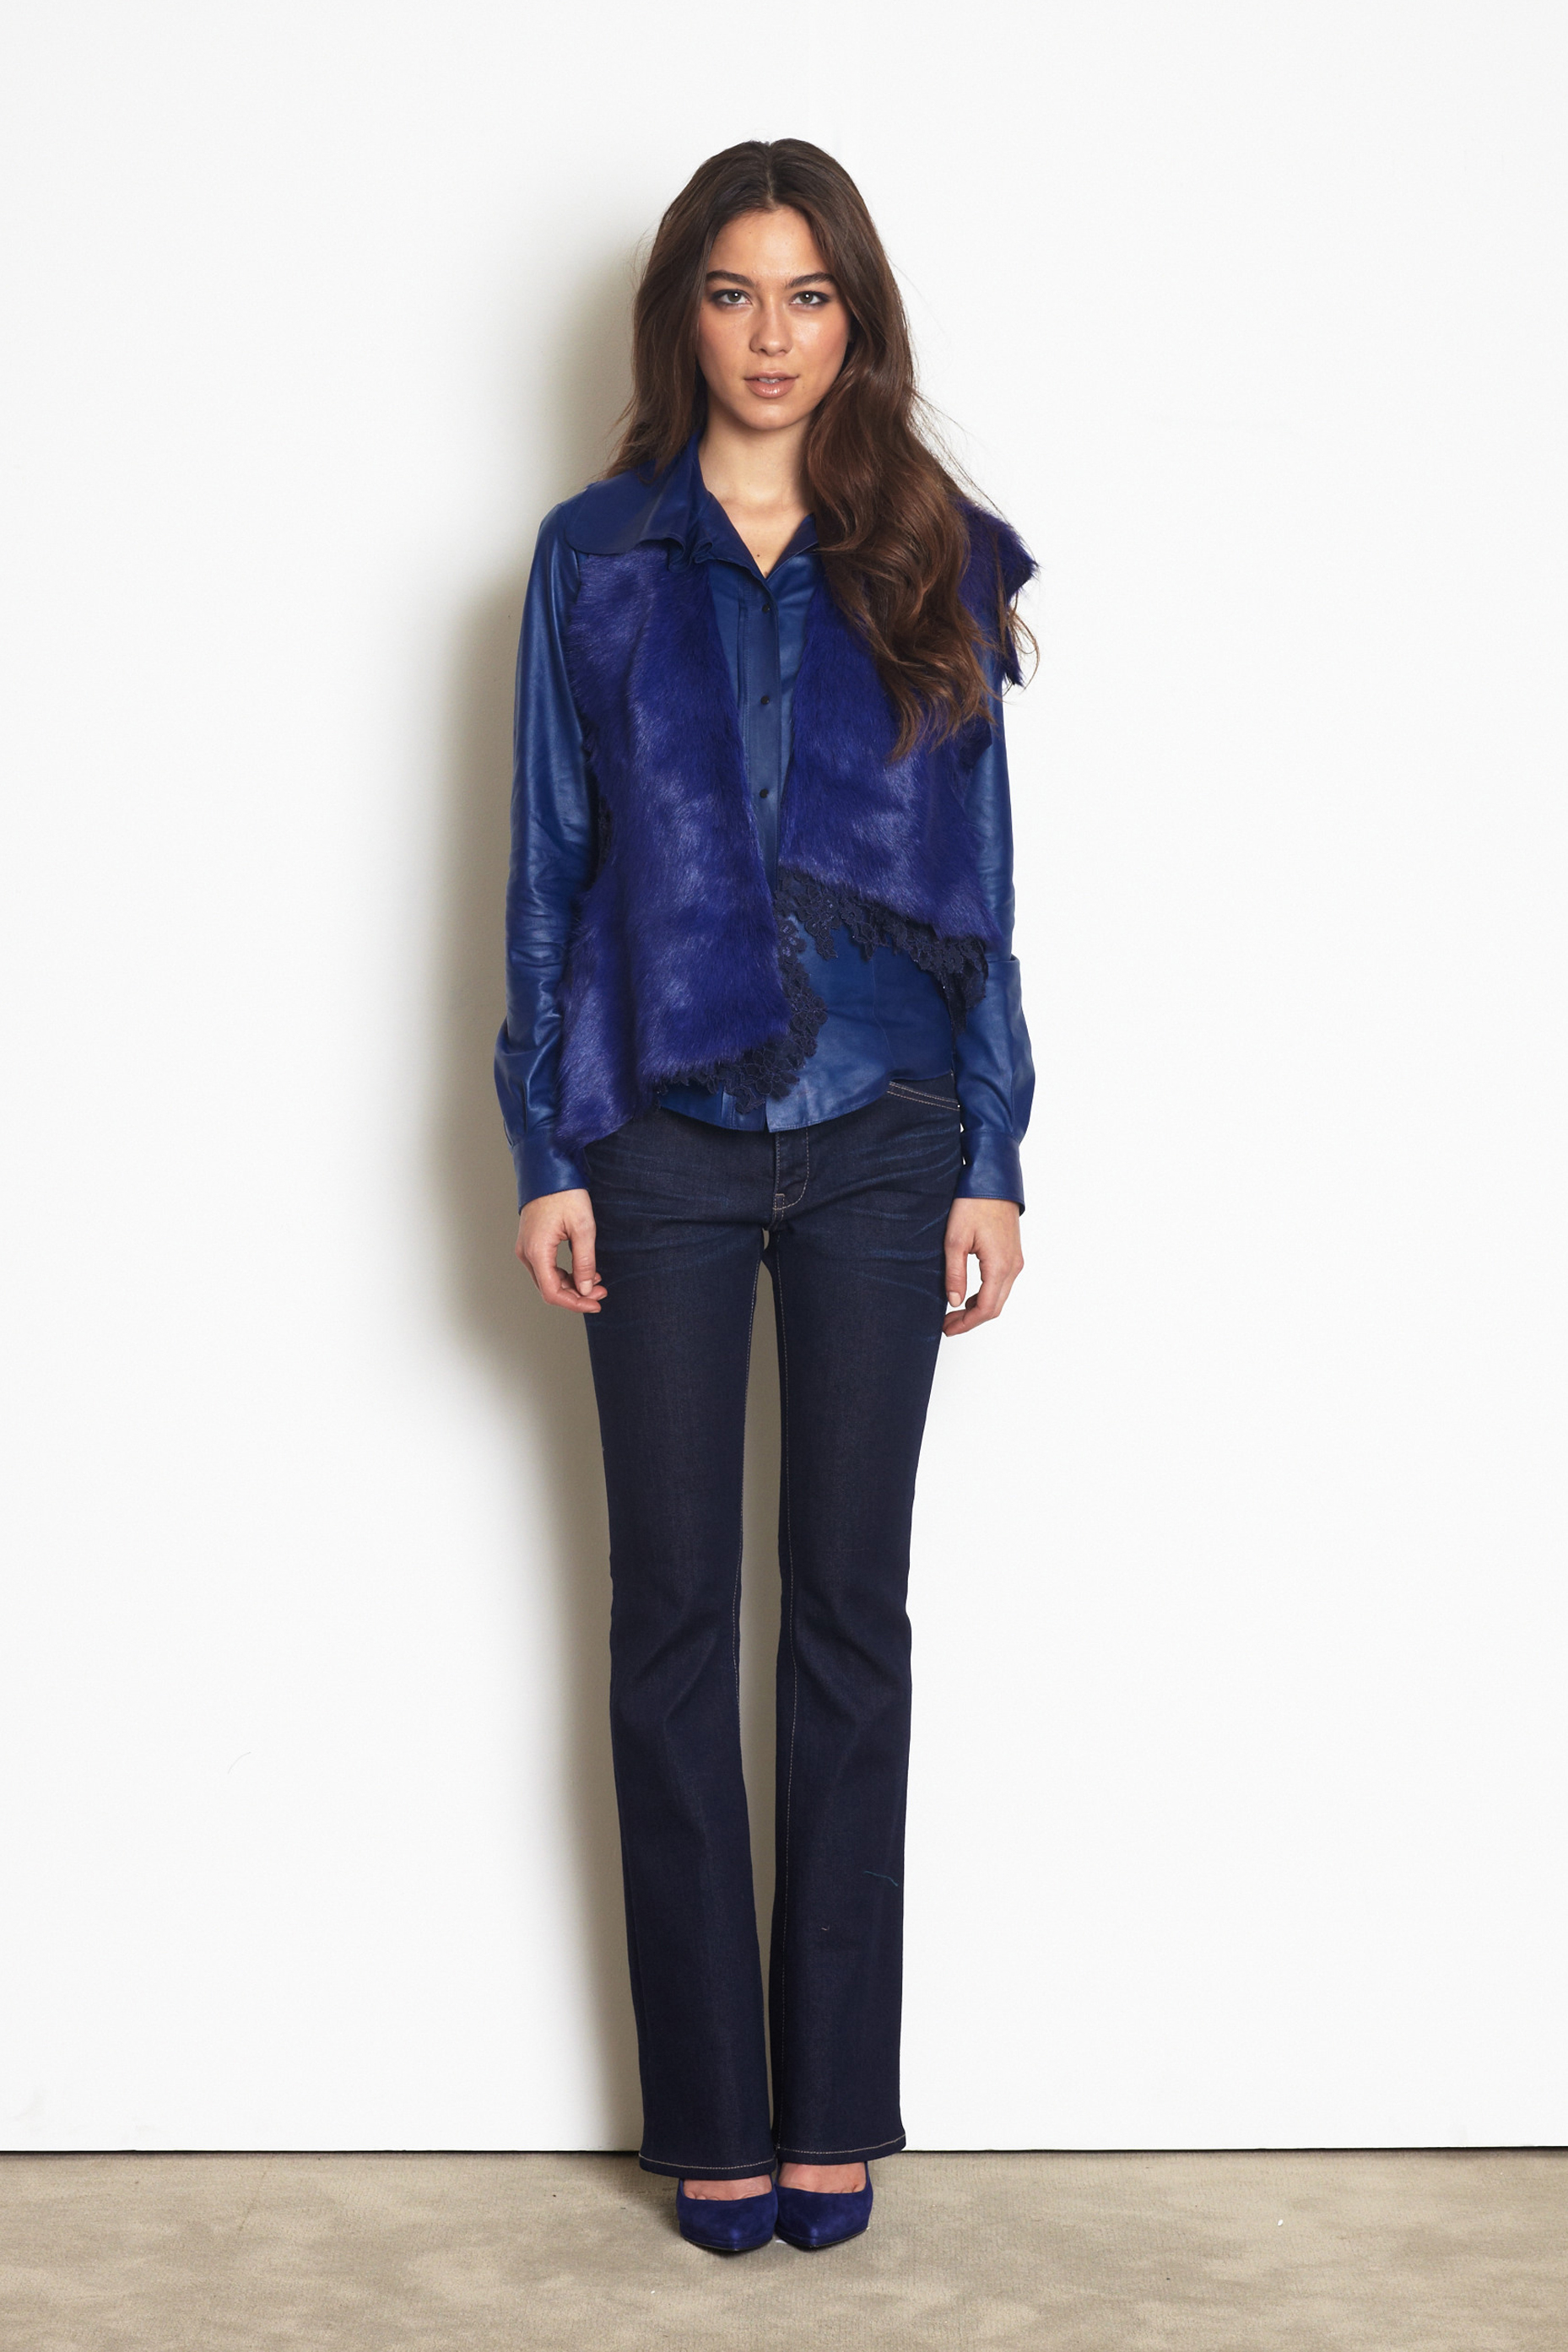 Elie Tahari fur/leather vest, leather blouse and denim pants is a great way to create a monochromatic palette